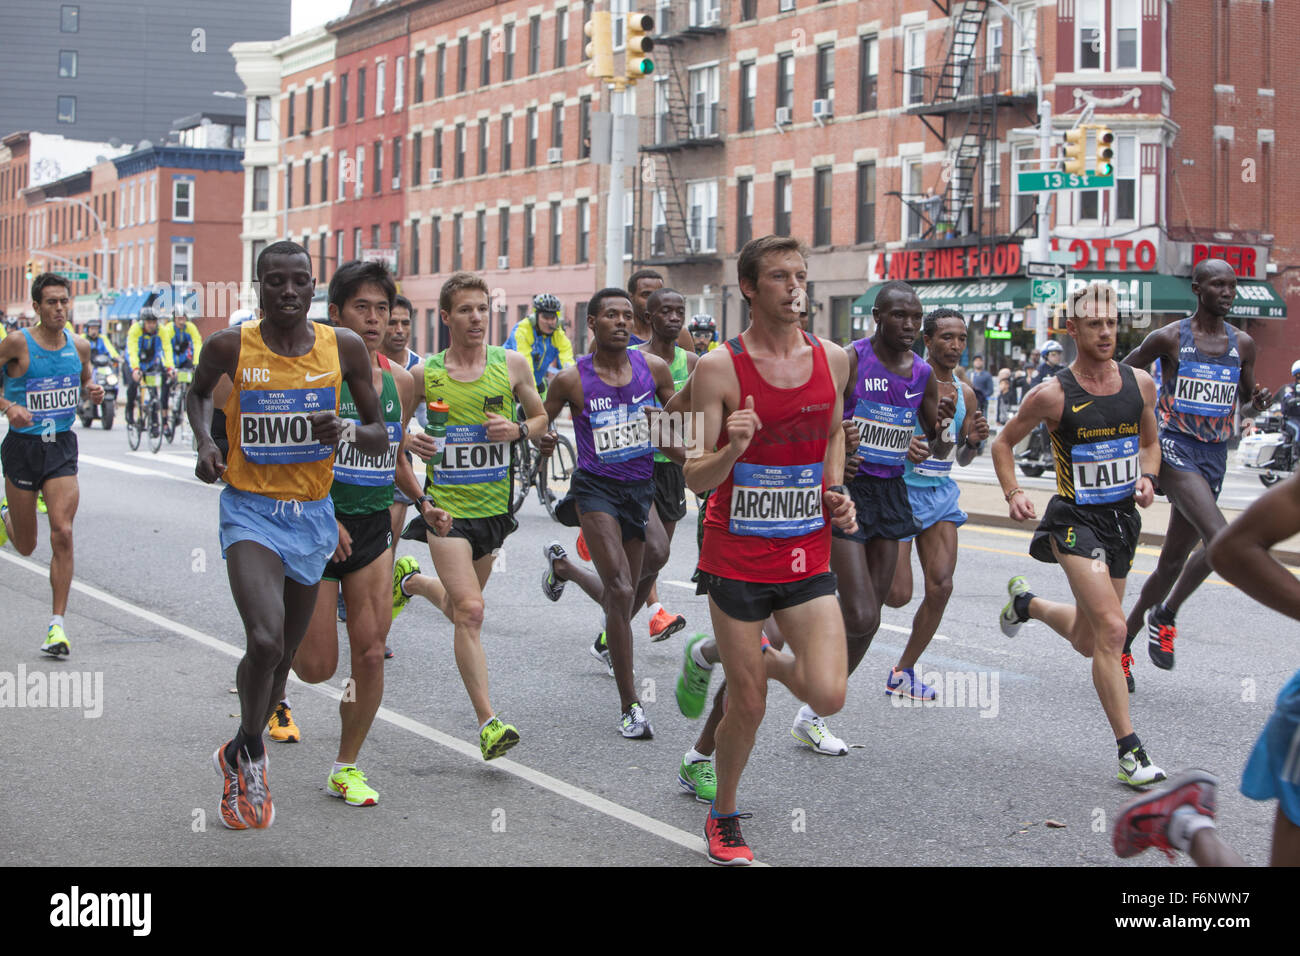 Front runners in the NYC Marathon 2015 along 4th Ave. in Brooklyn with Stanley Biwott (left) of Kenya the eventual - Stock Image